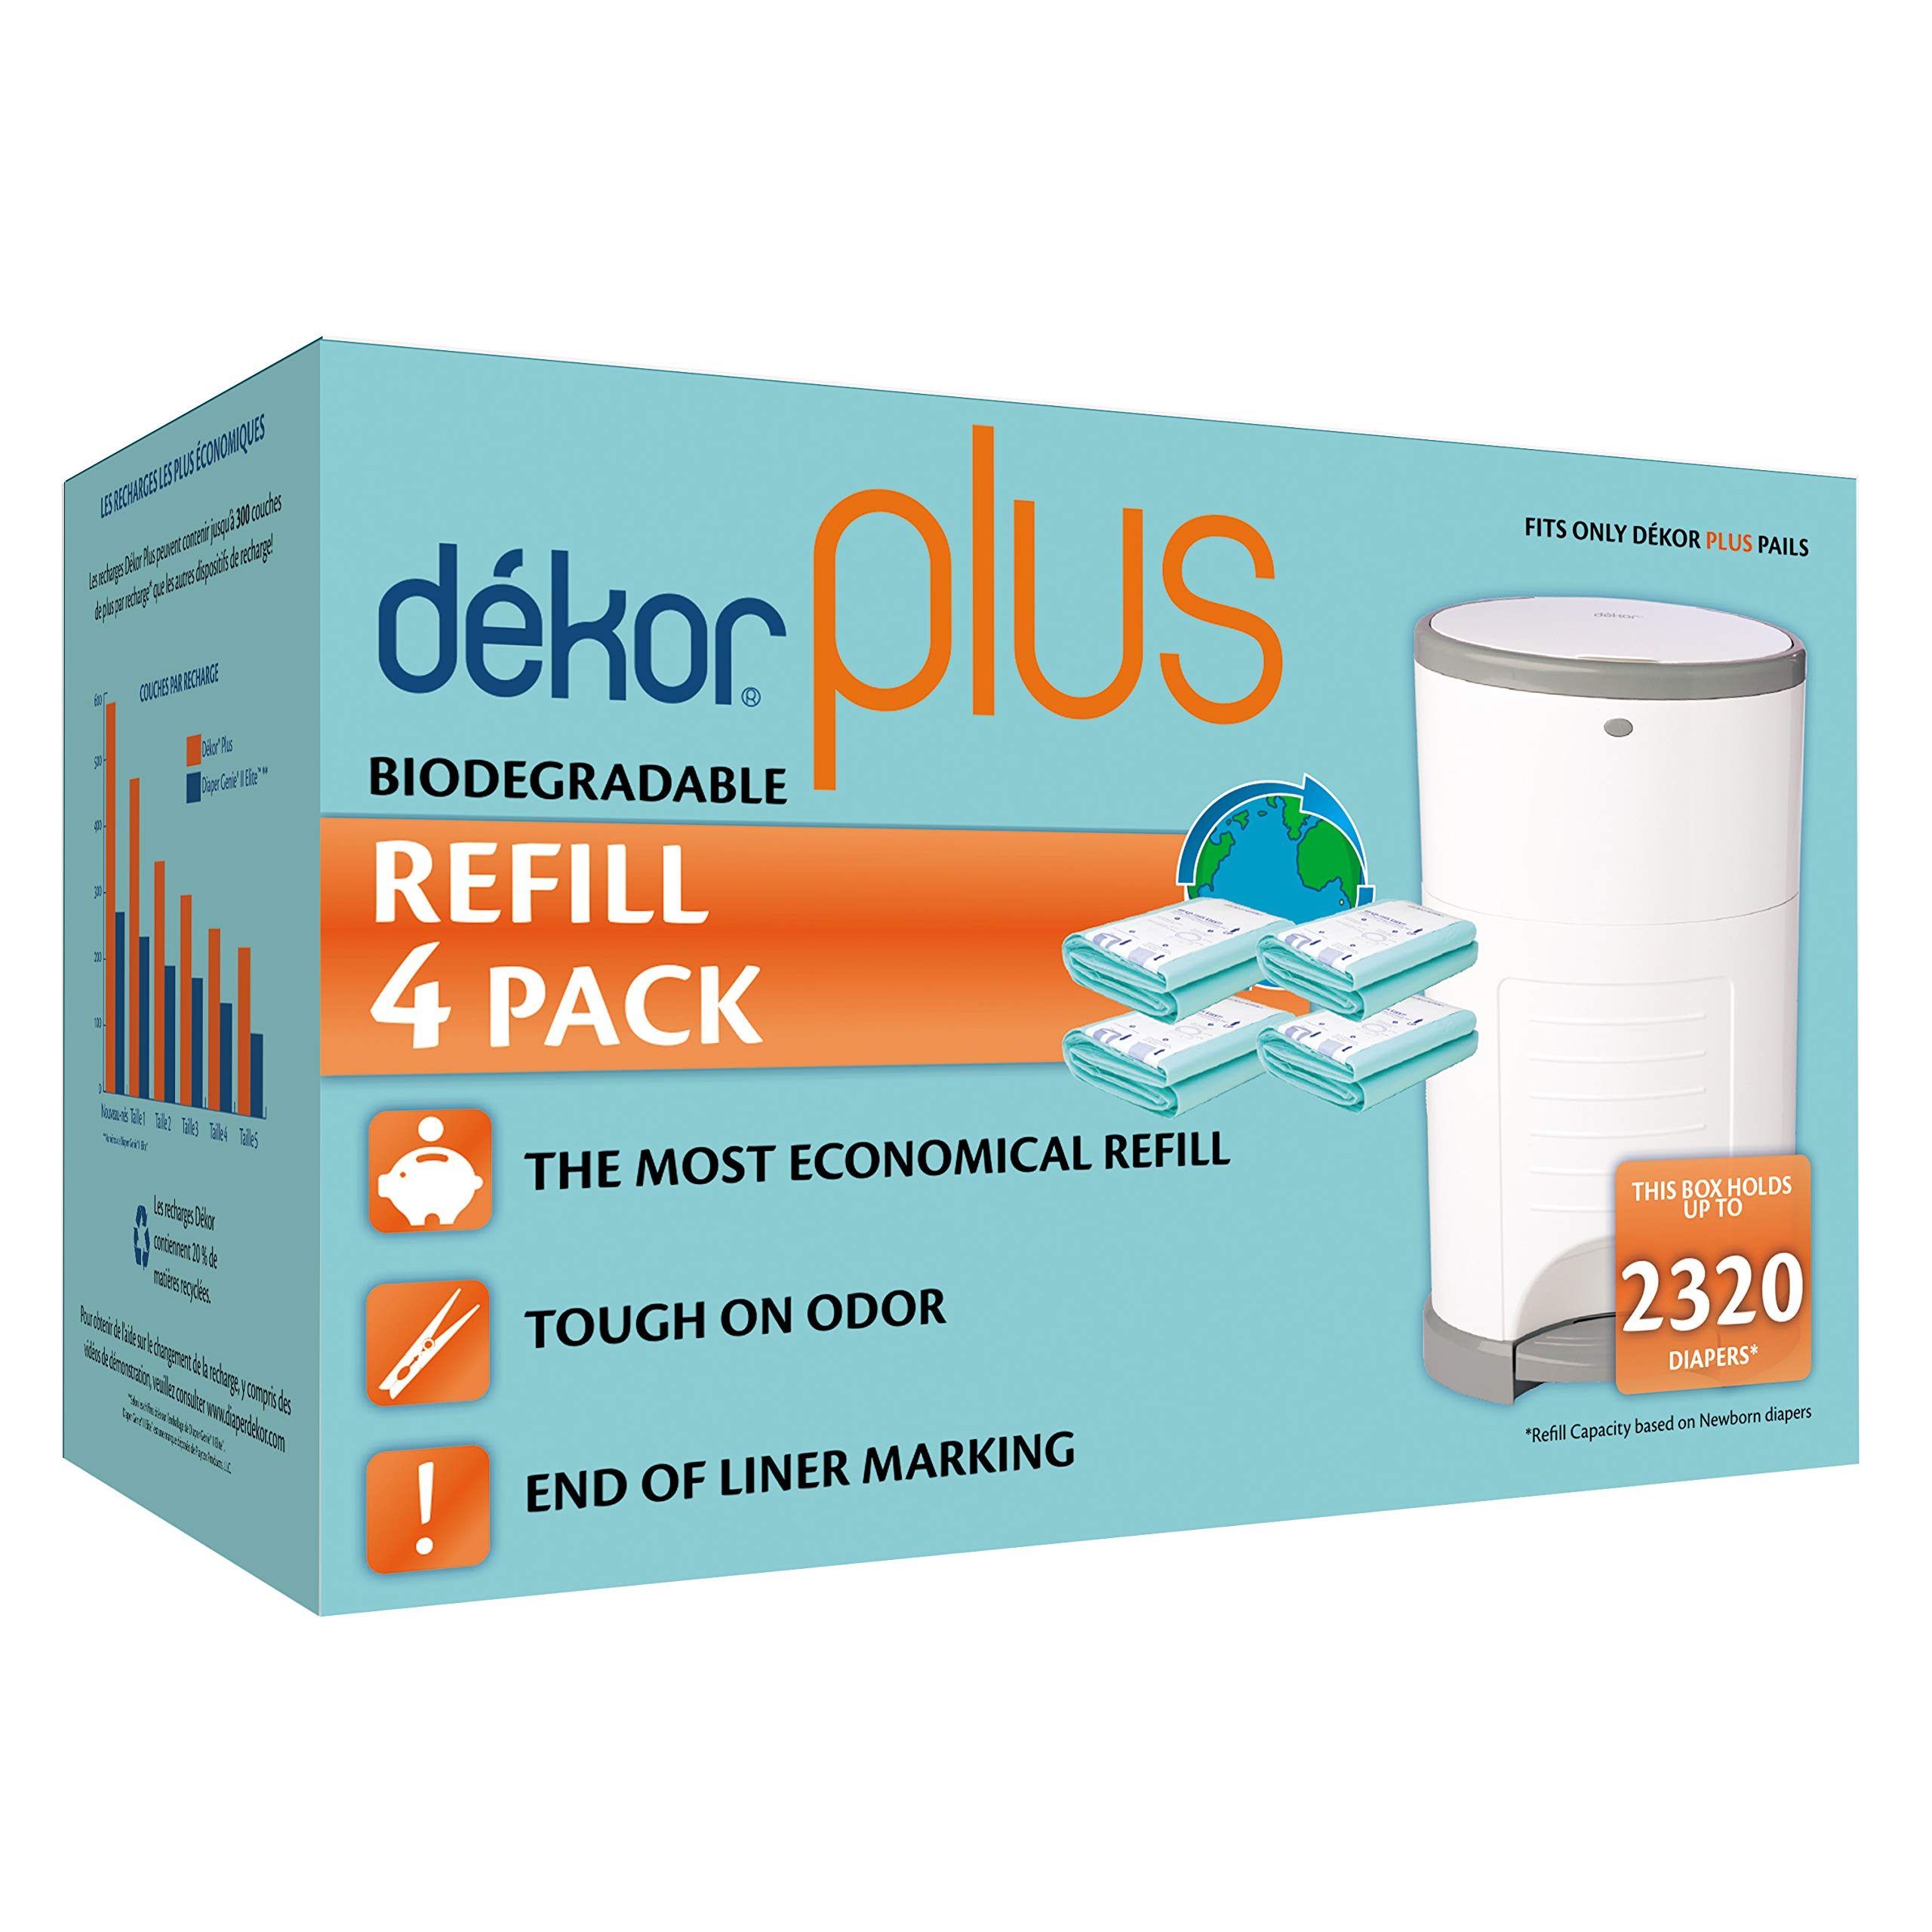 Dekor Plus Diaper Pail Biodegradable Refills | 4 Count  | Most Economical Refill System | Quick and Simple to Replace | No Preset Bag Size - Use Only What You Need | Exclusive End-of-Liner Marking by DEKOR